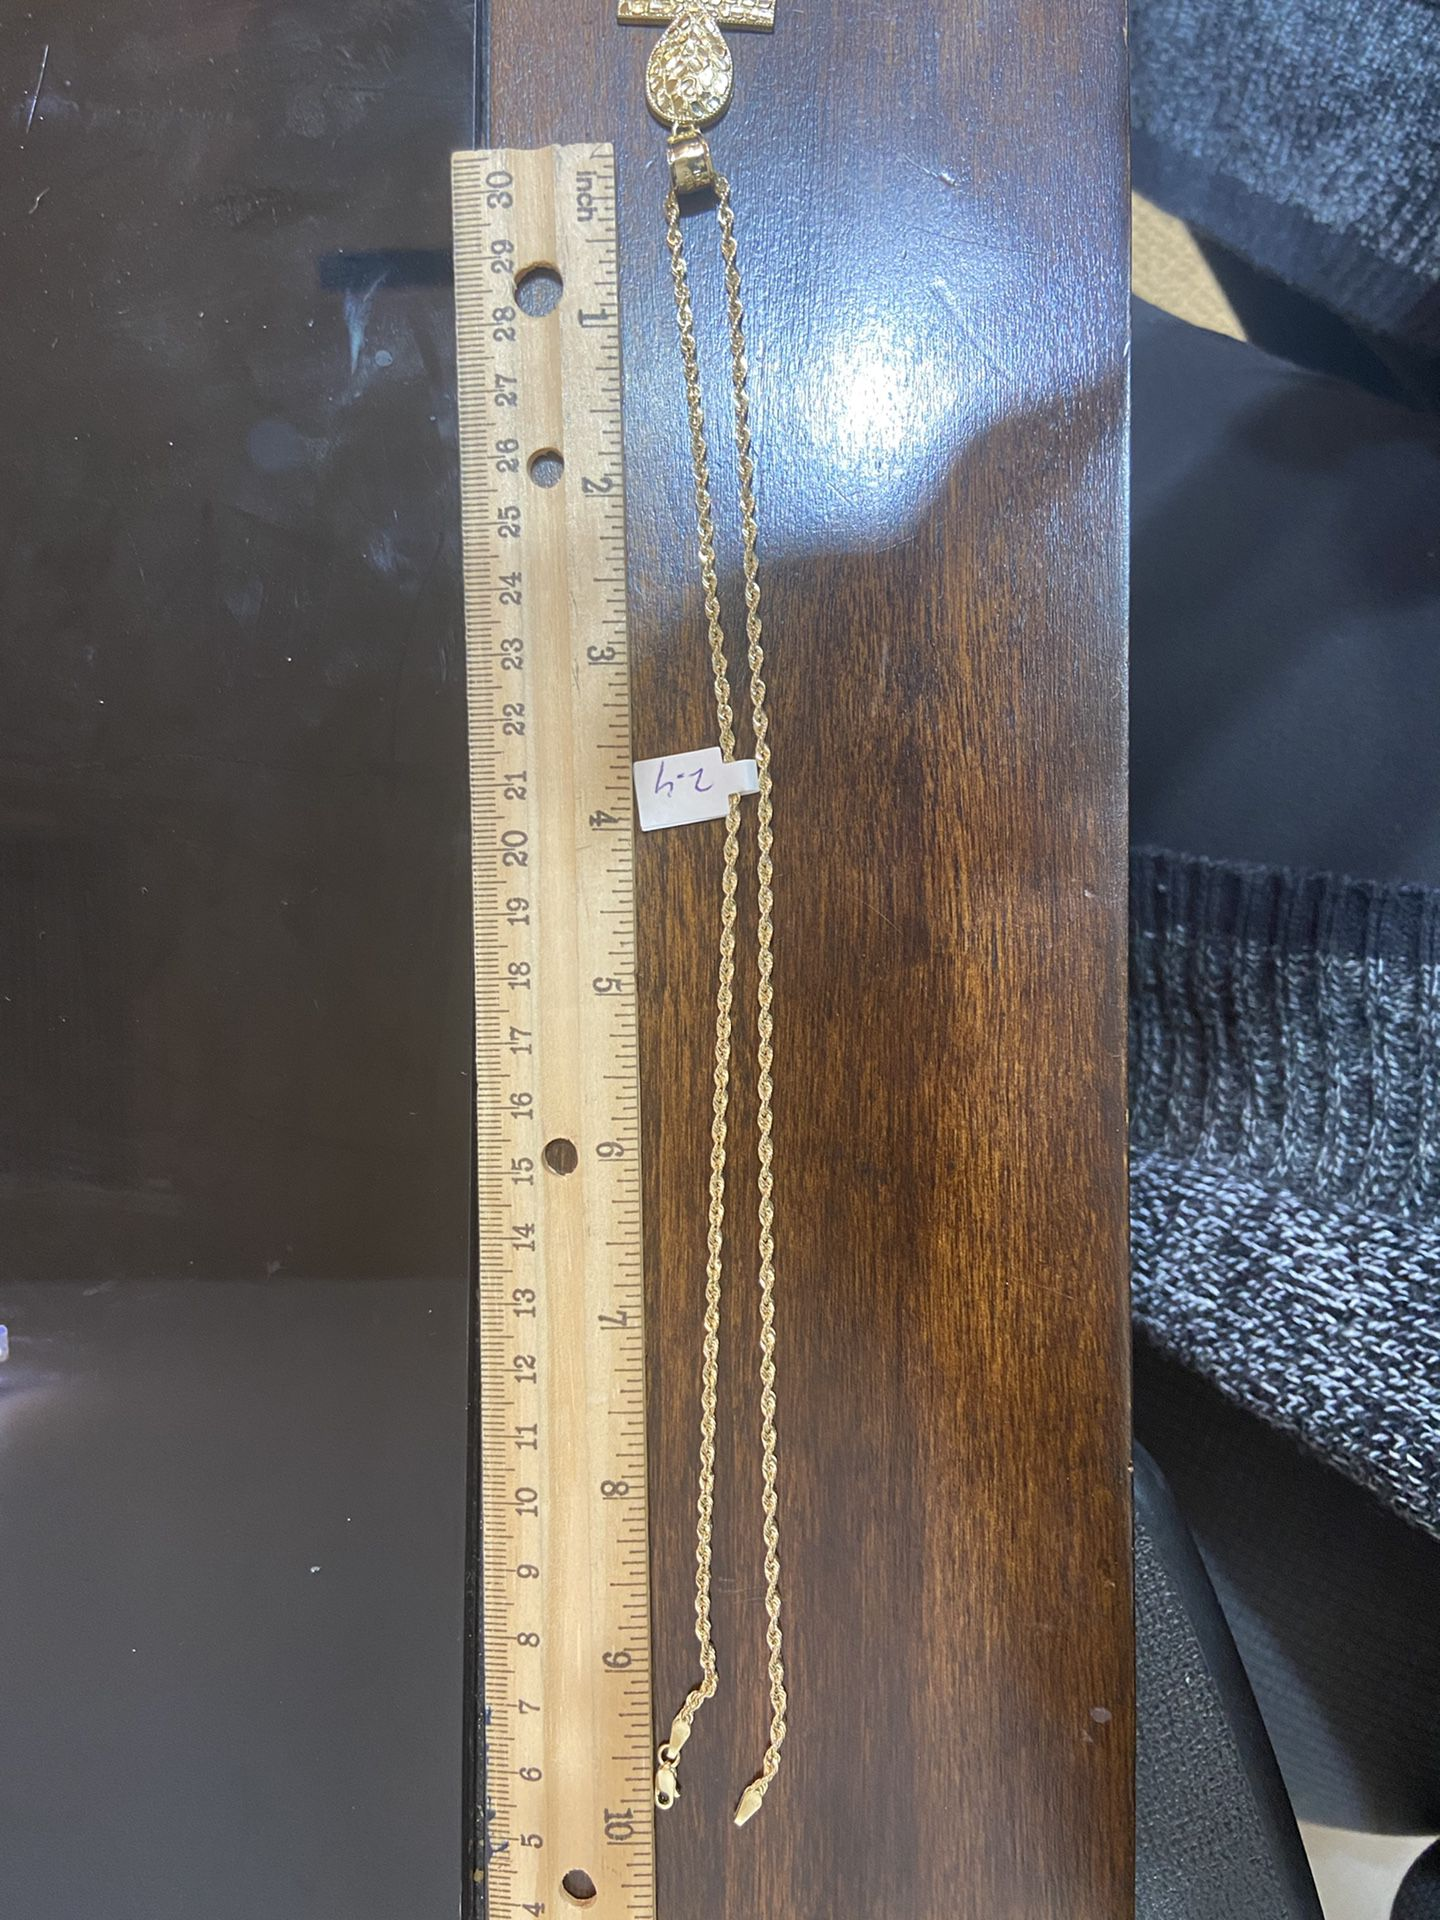 10k gold rope chain and pendant combo for a good price!!